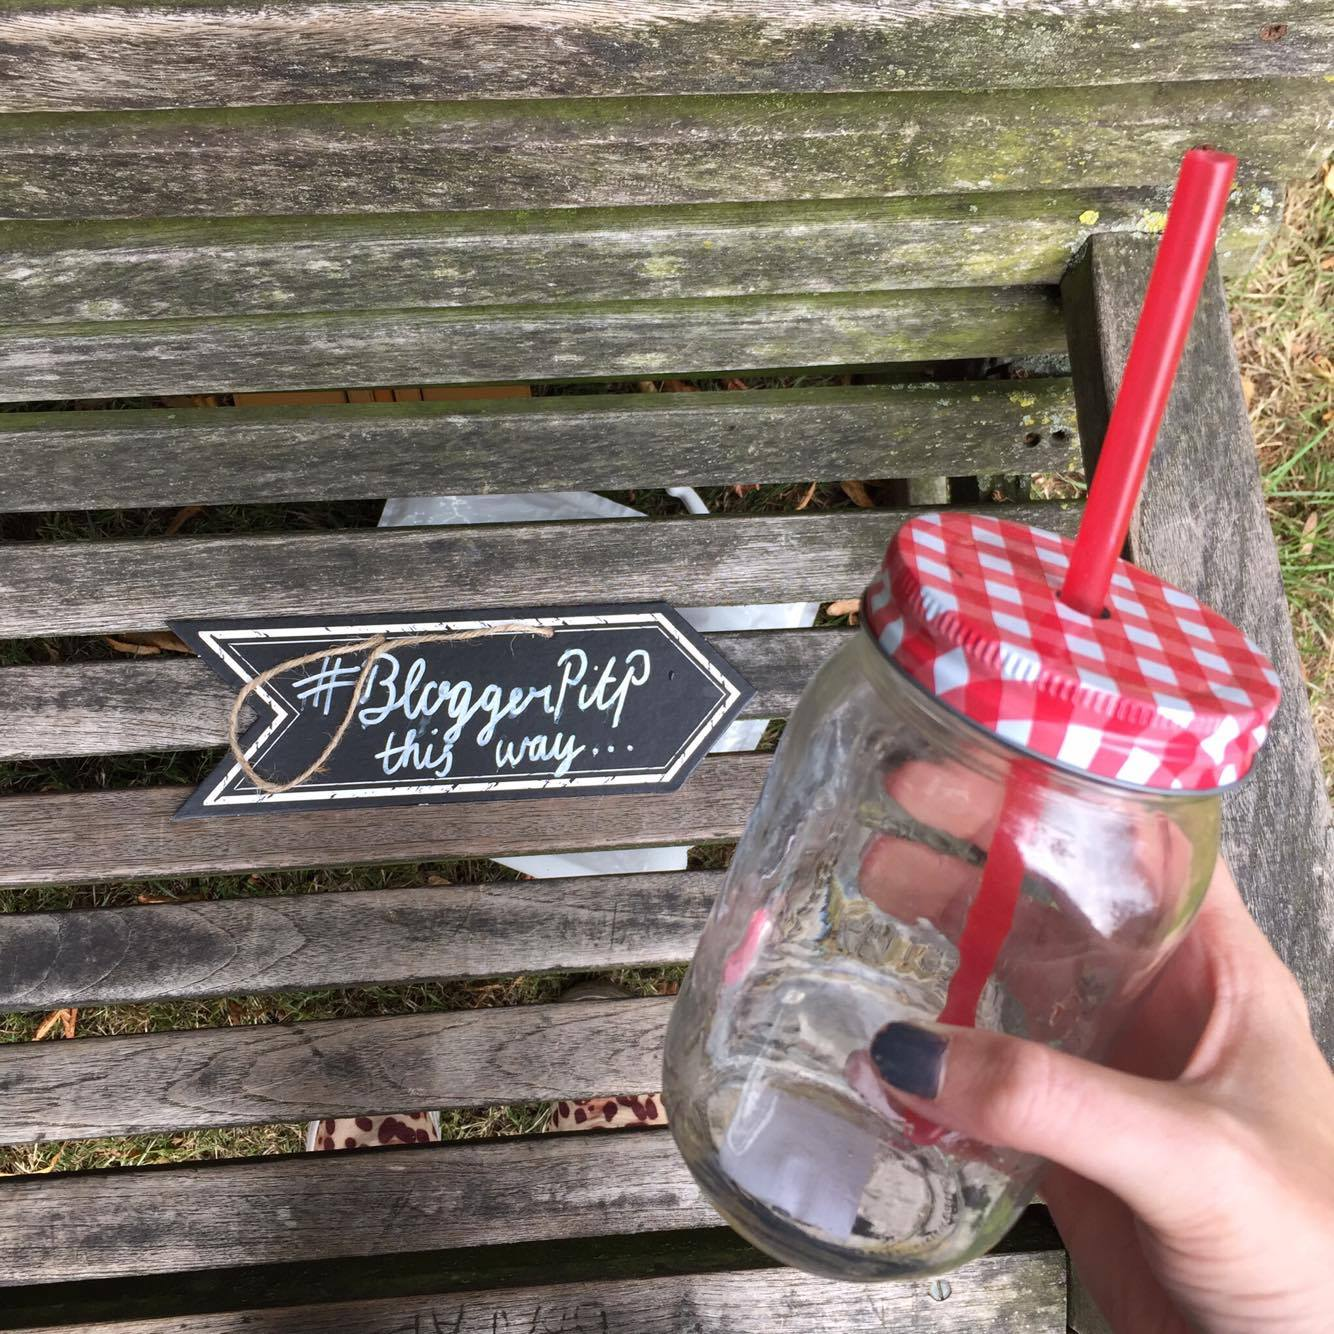 Each blogger was asked to bring a jam jar to drink from - Instagram worthy.